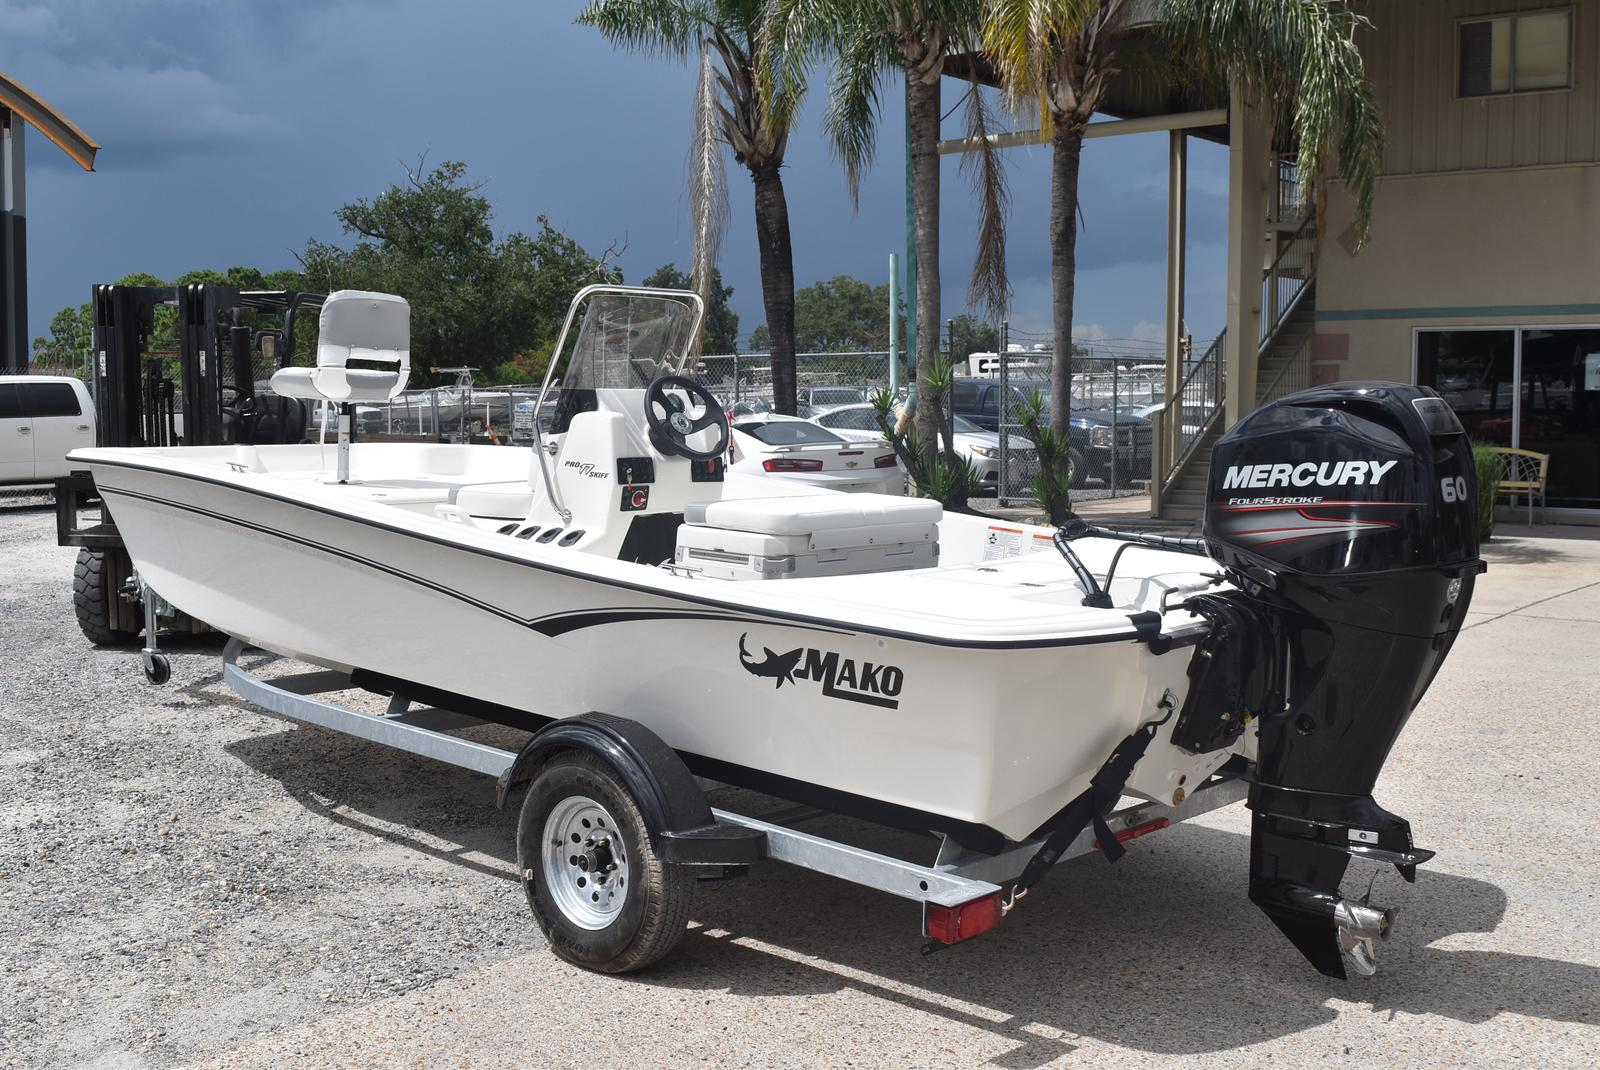 2020 Mako boat for sale, model of the boat is Pro Skiff 17, 75 ELPT & Image # 230 of 702